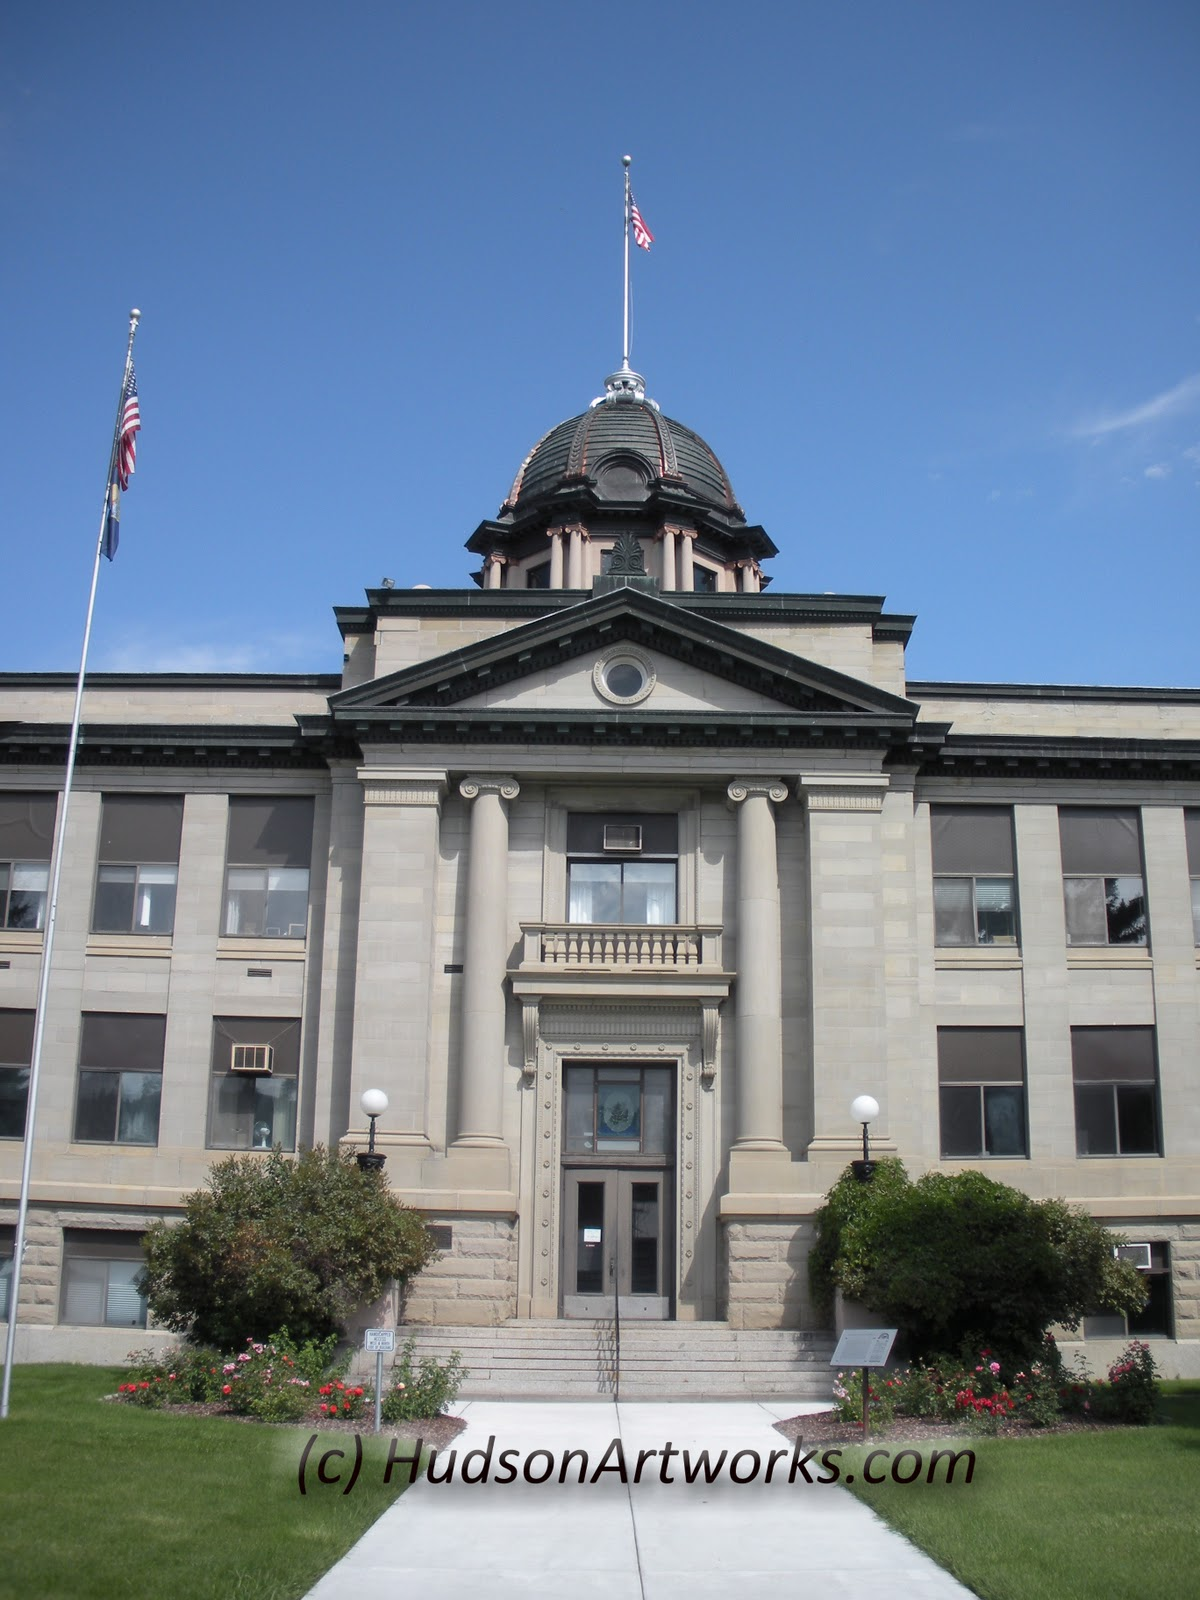 Montana rosebud county forsyth - Here Is A Photo I Took Of The Rosebud County Courthouse You Will See That This Building Is Much Like The Divide County North Dakota County Courthouse From